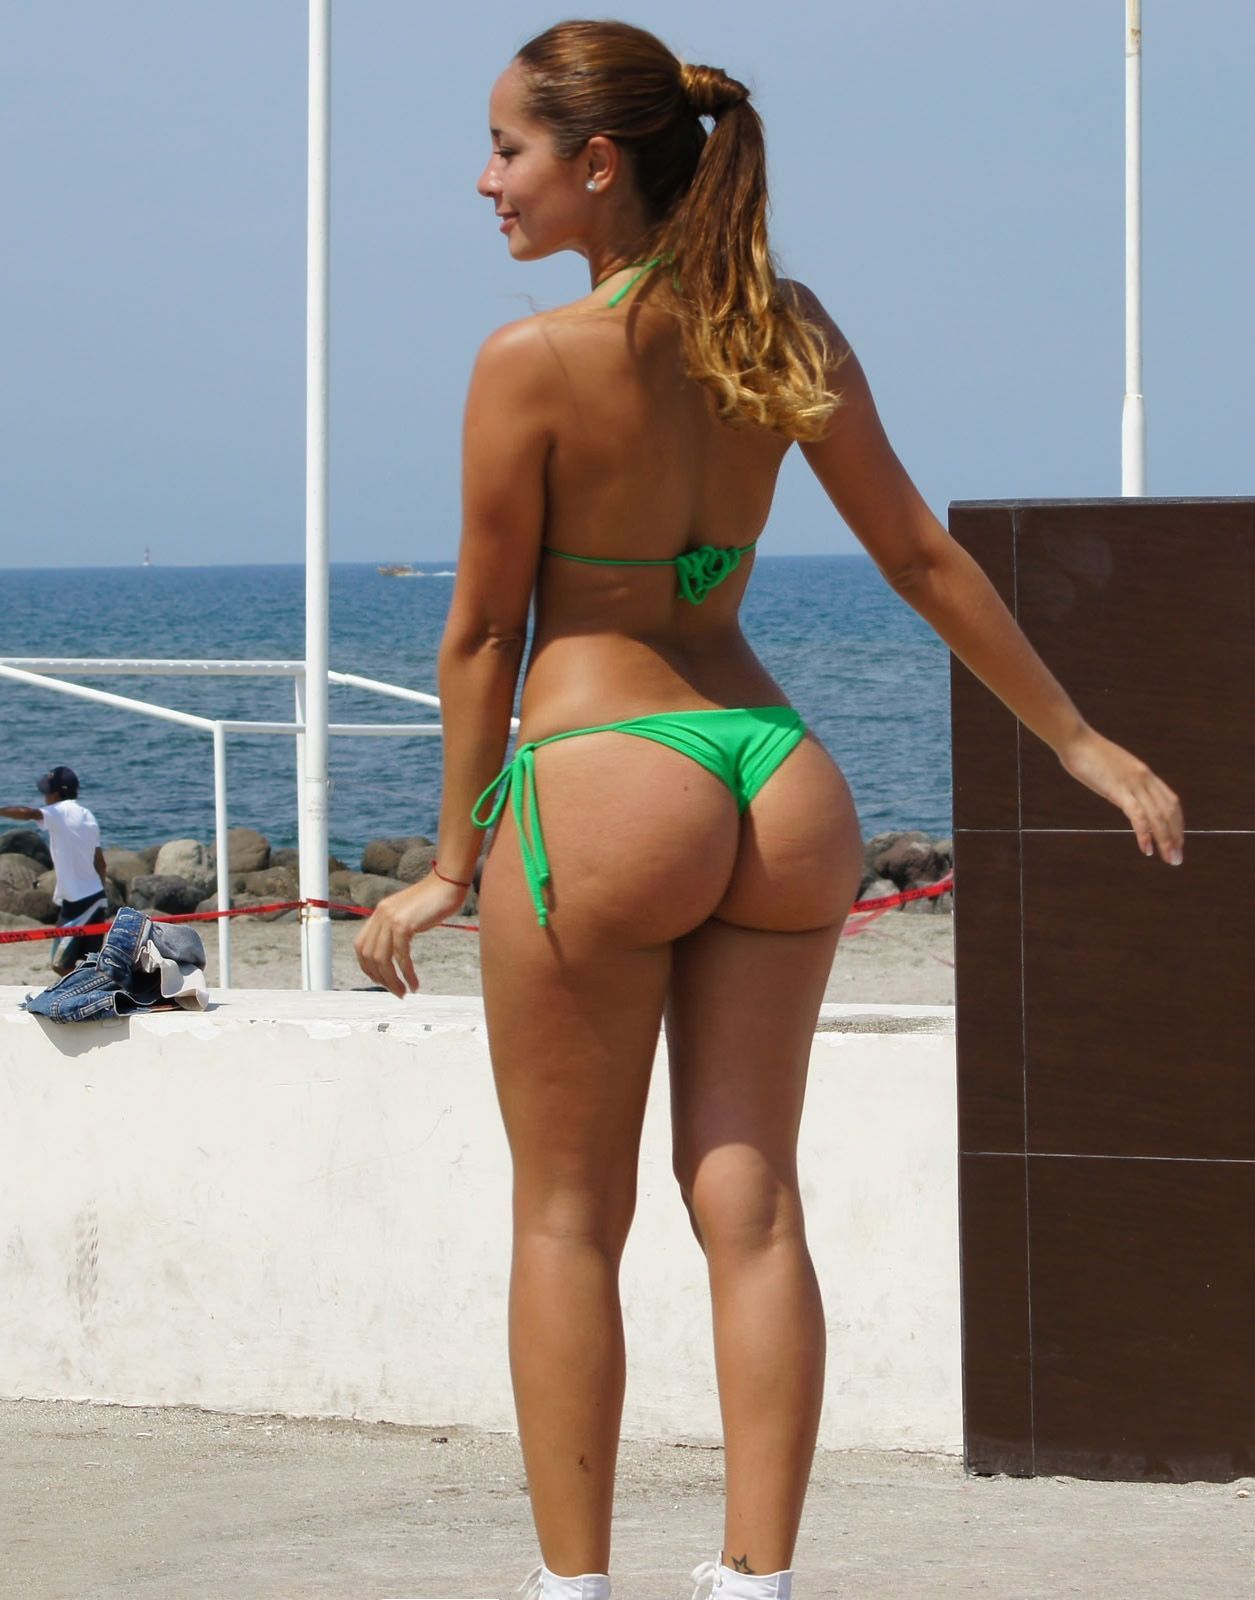 Big bikini butt photo woman